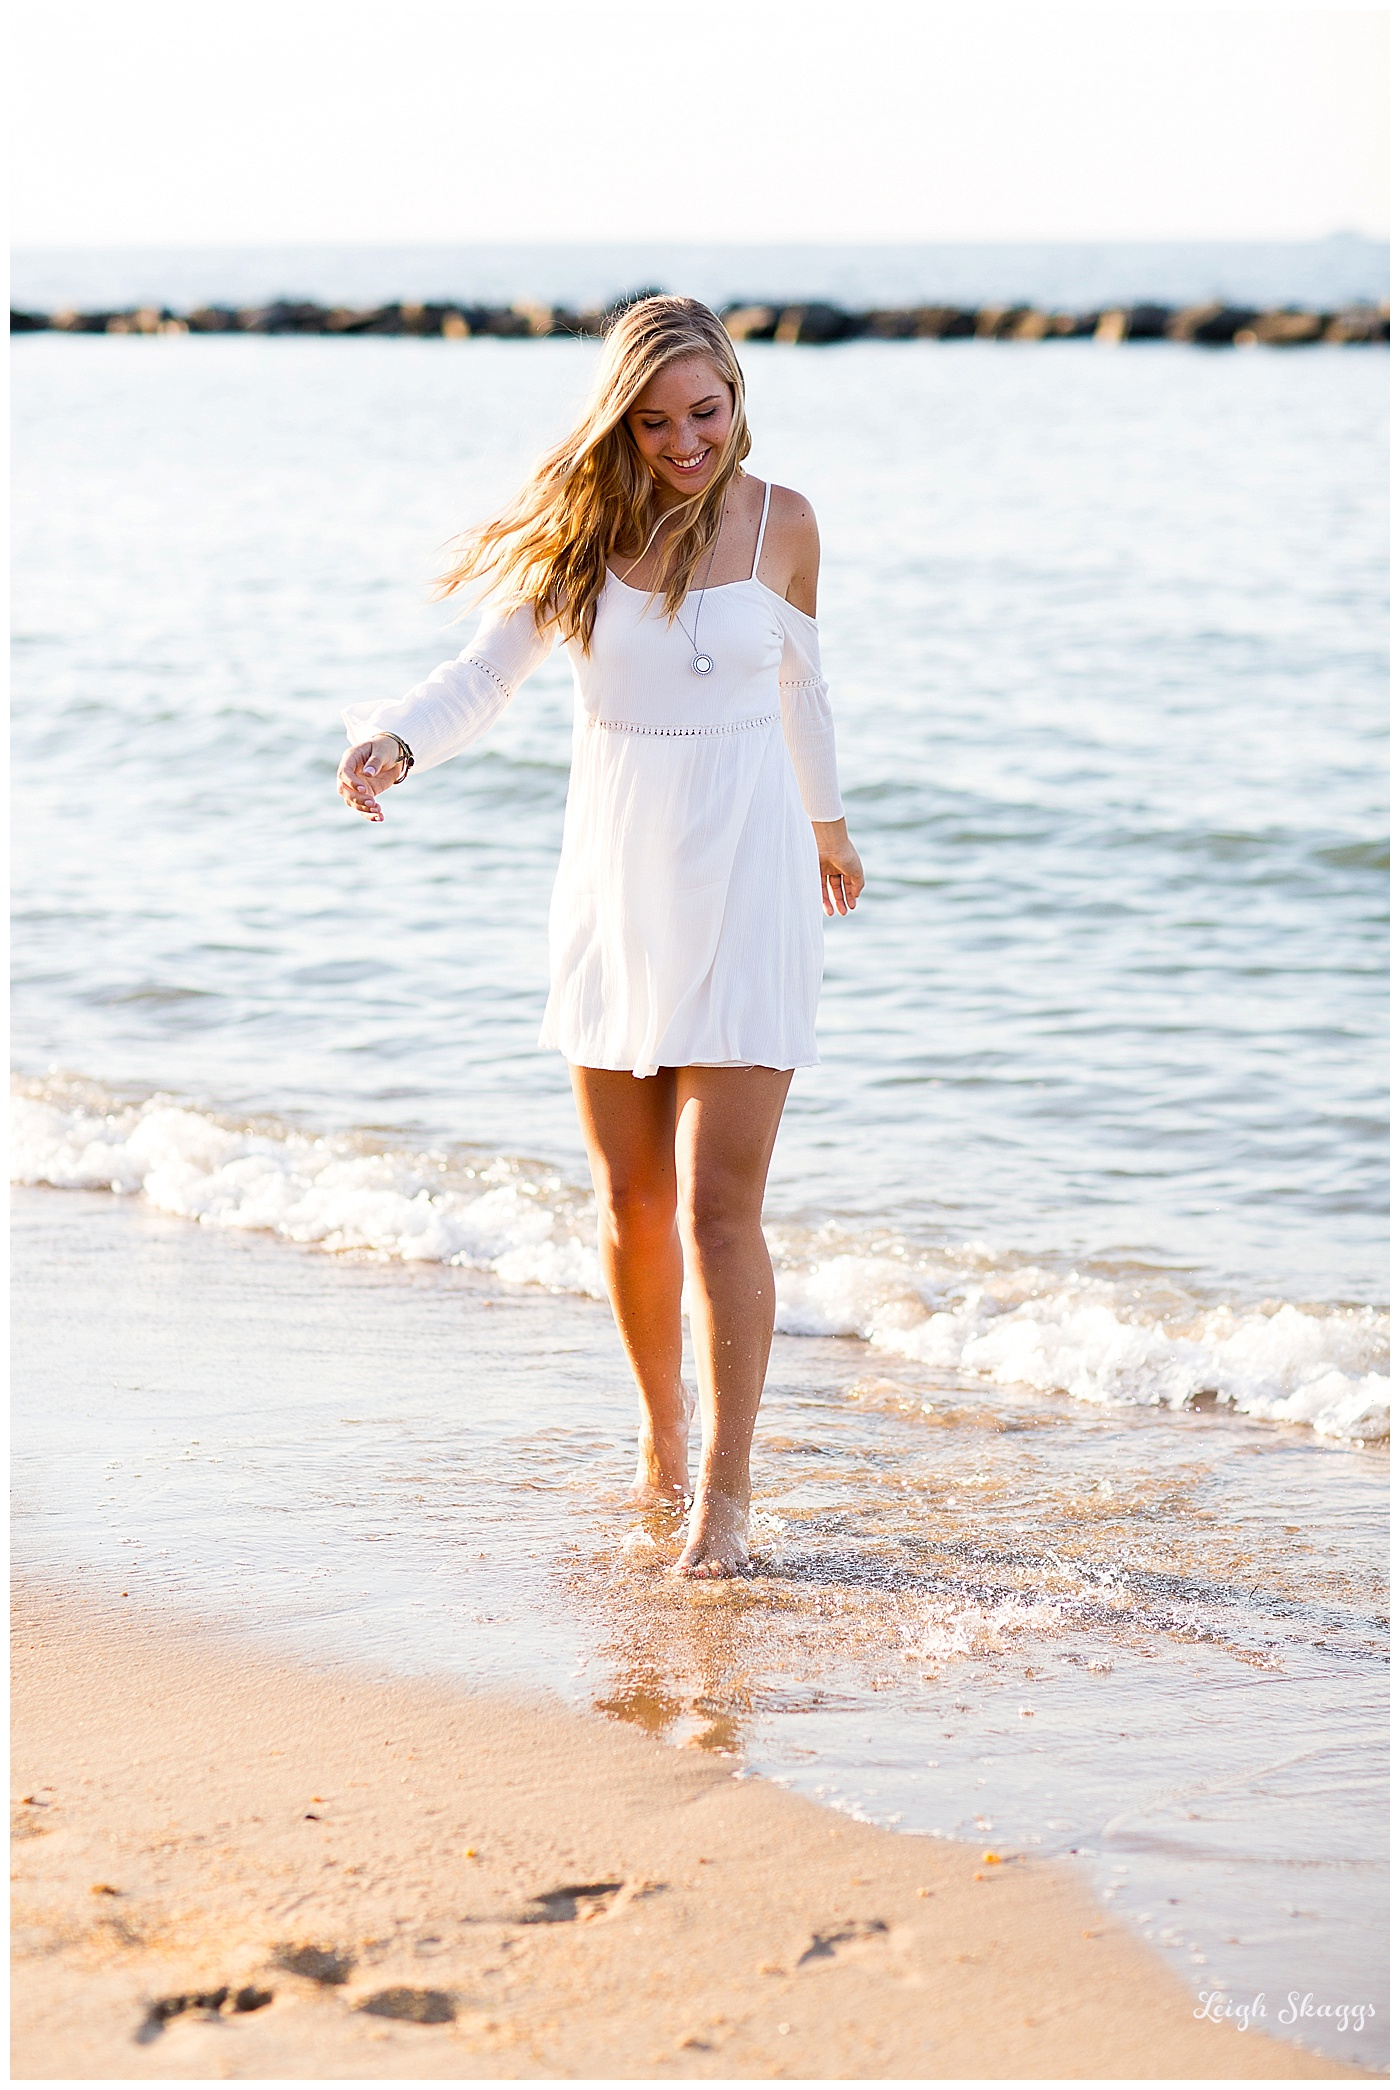 Natalie is a Senior!!  An East Beach Senior Portrait session!